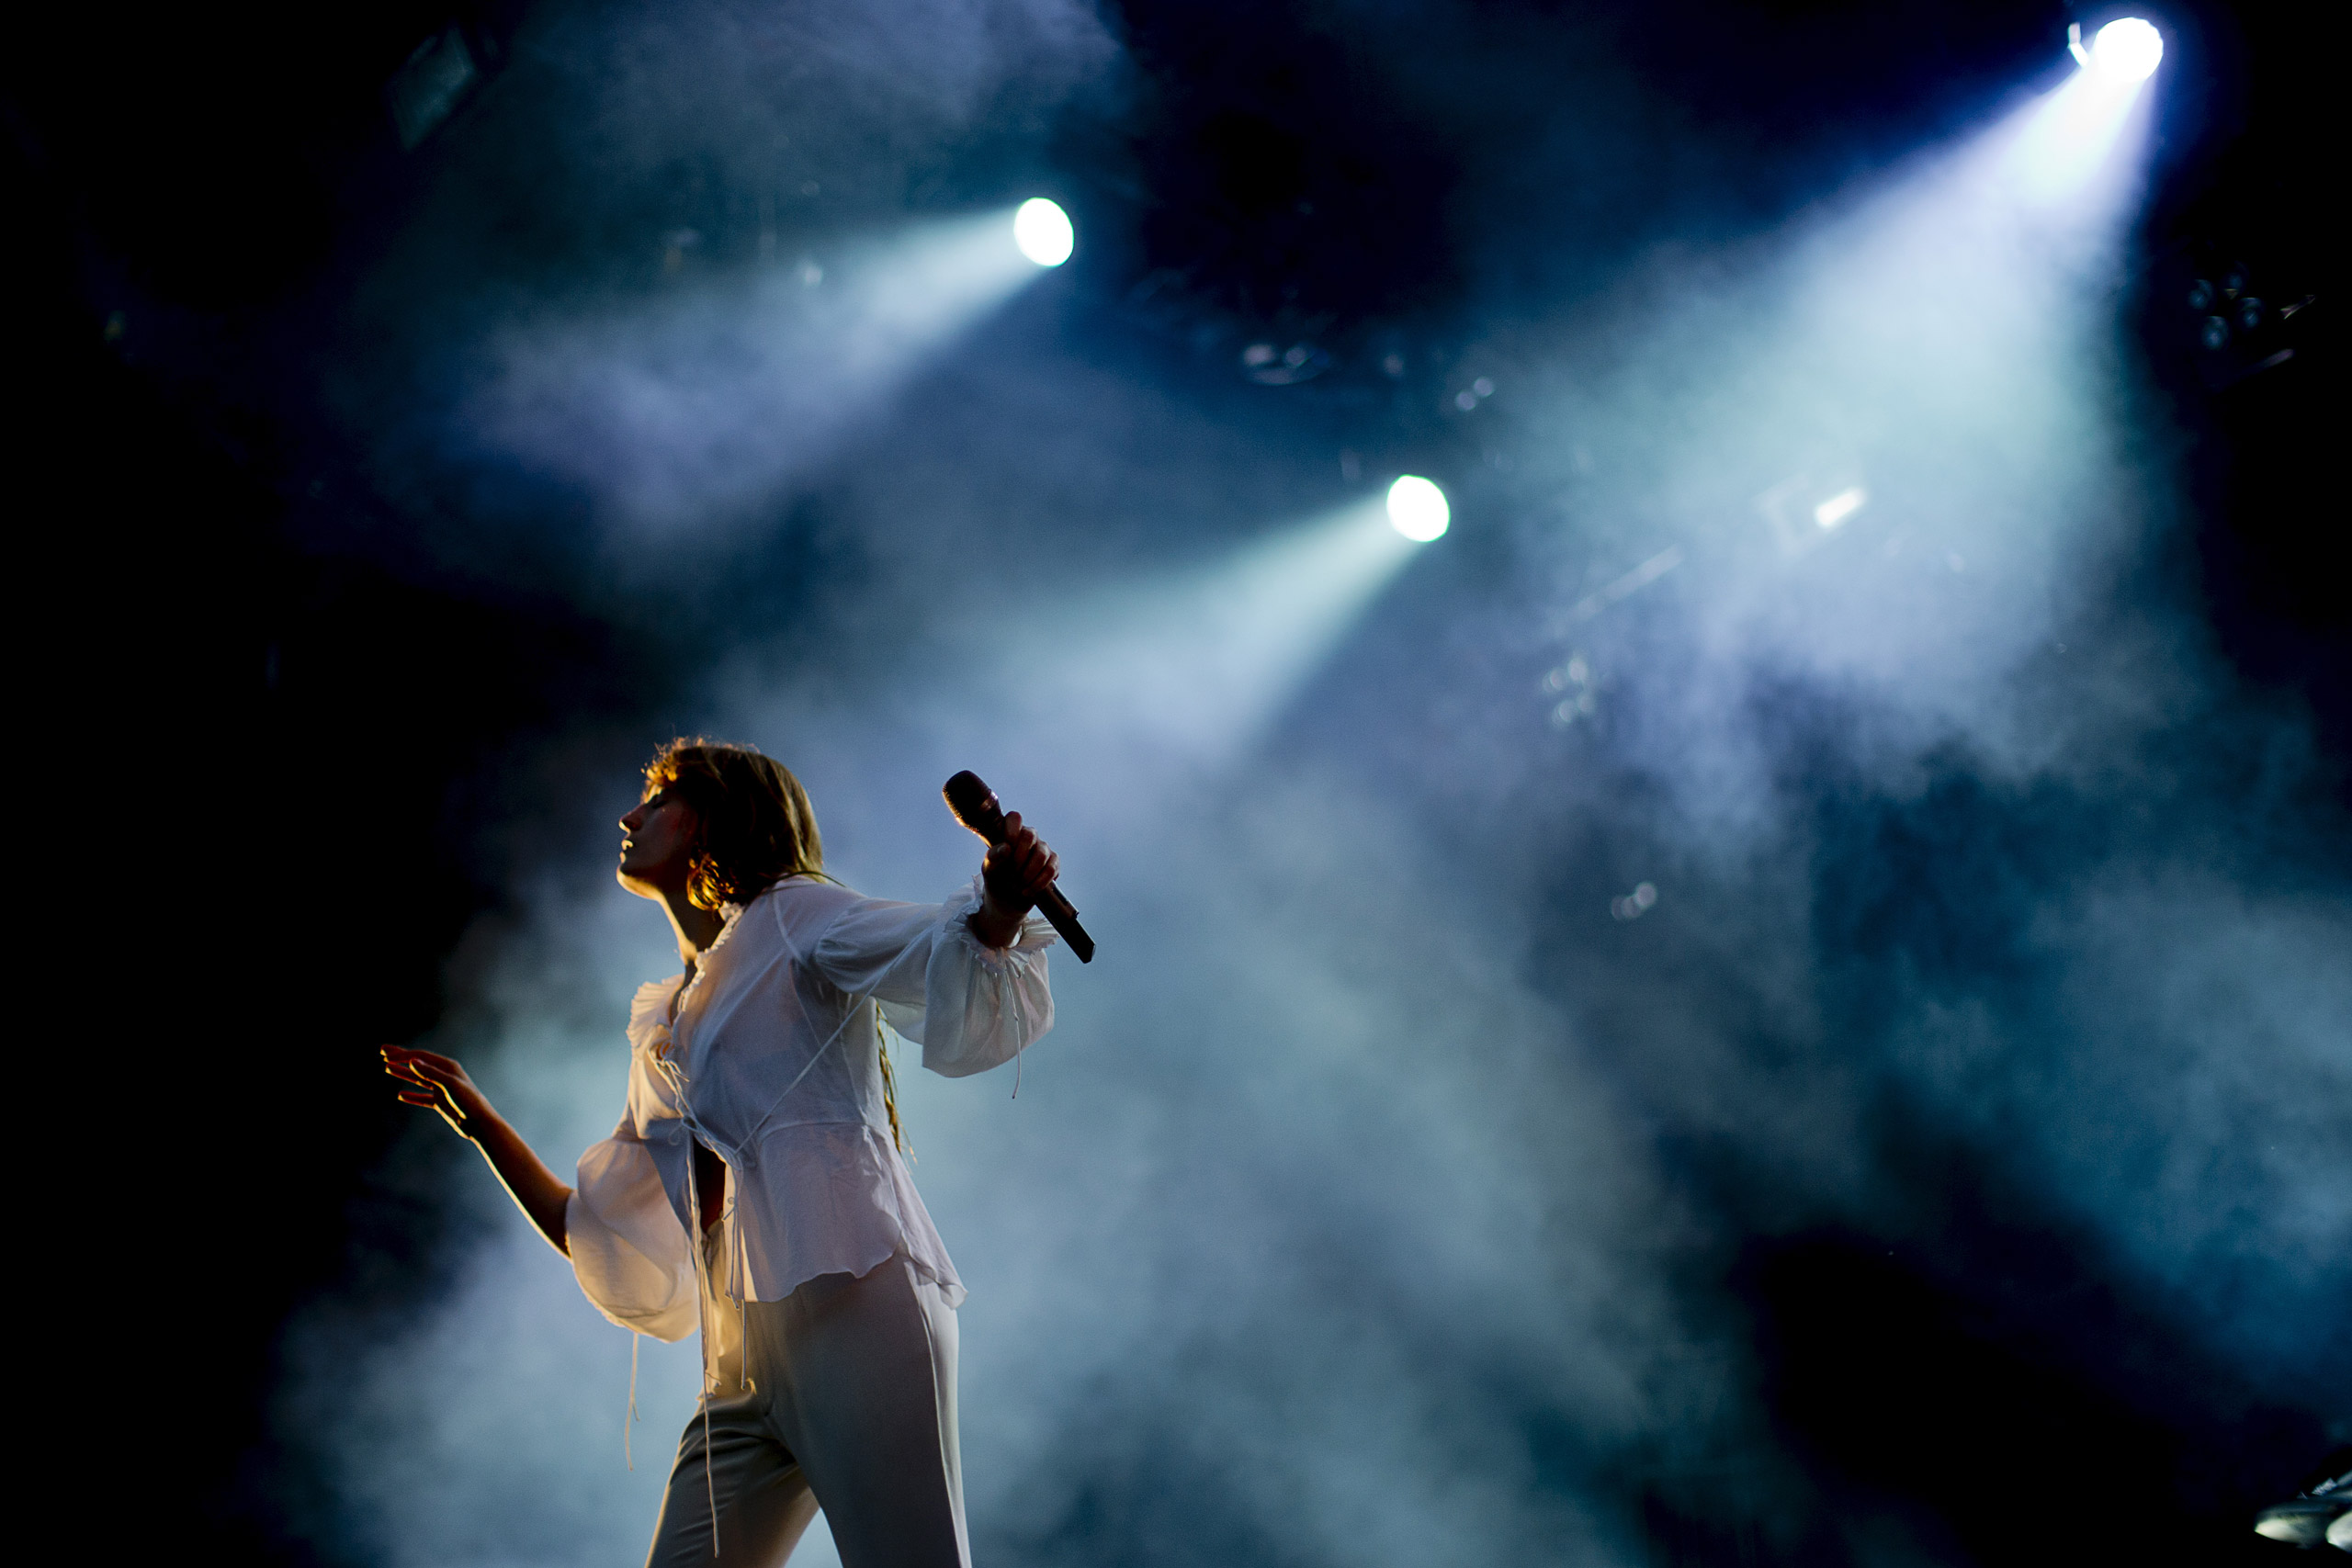 Florence and the Machine performing at Way Out West rock festival in Gothenburg, Sweden, on Aug. 14, 2015.